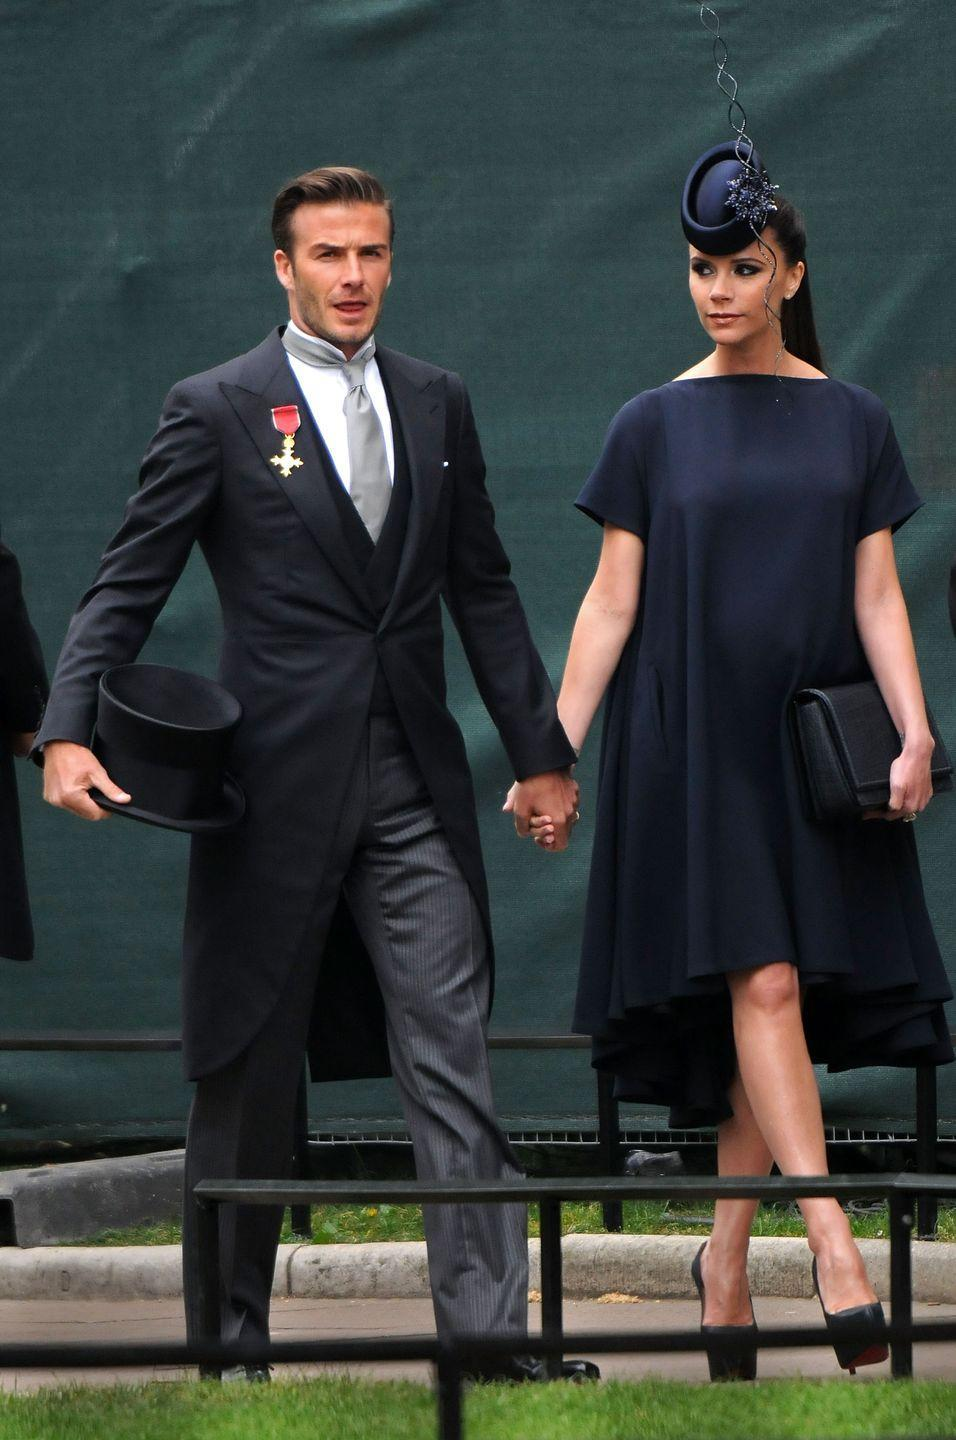 <p>Looking especially posh in a navy blue fascinator, fashion designer and erstwhile Spice Girl Victoria Beckham attends the royal wedding with her husband David.</p>